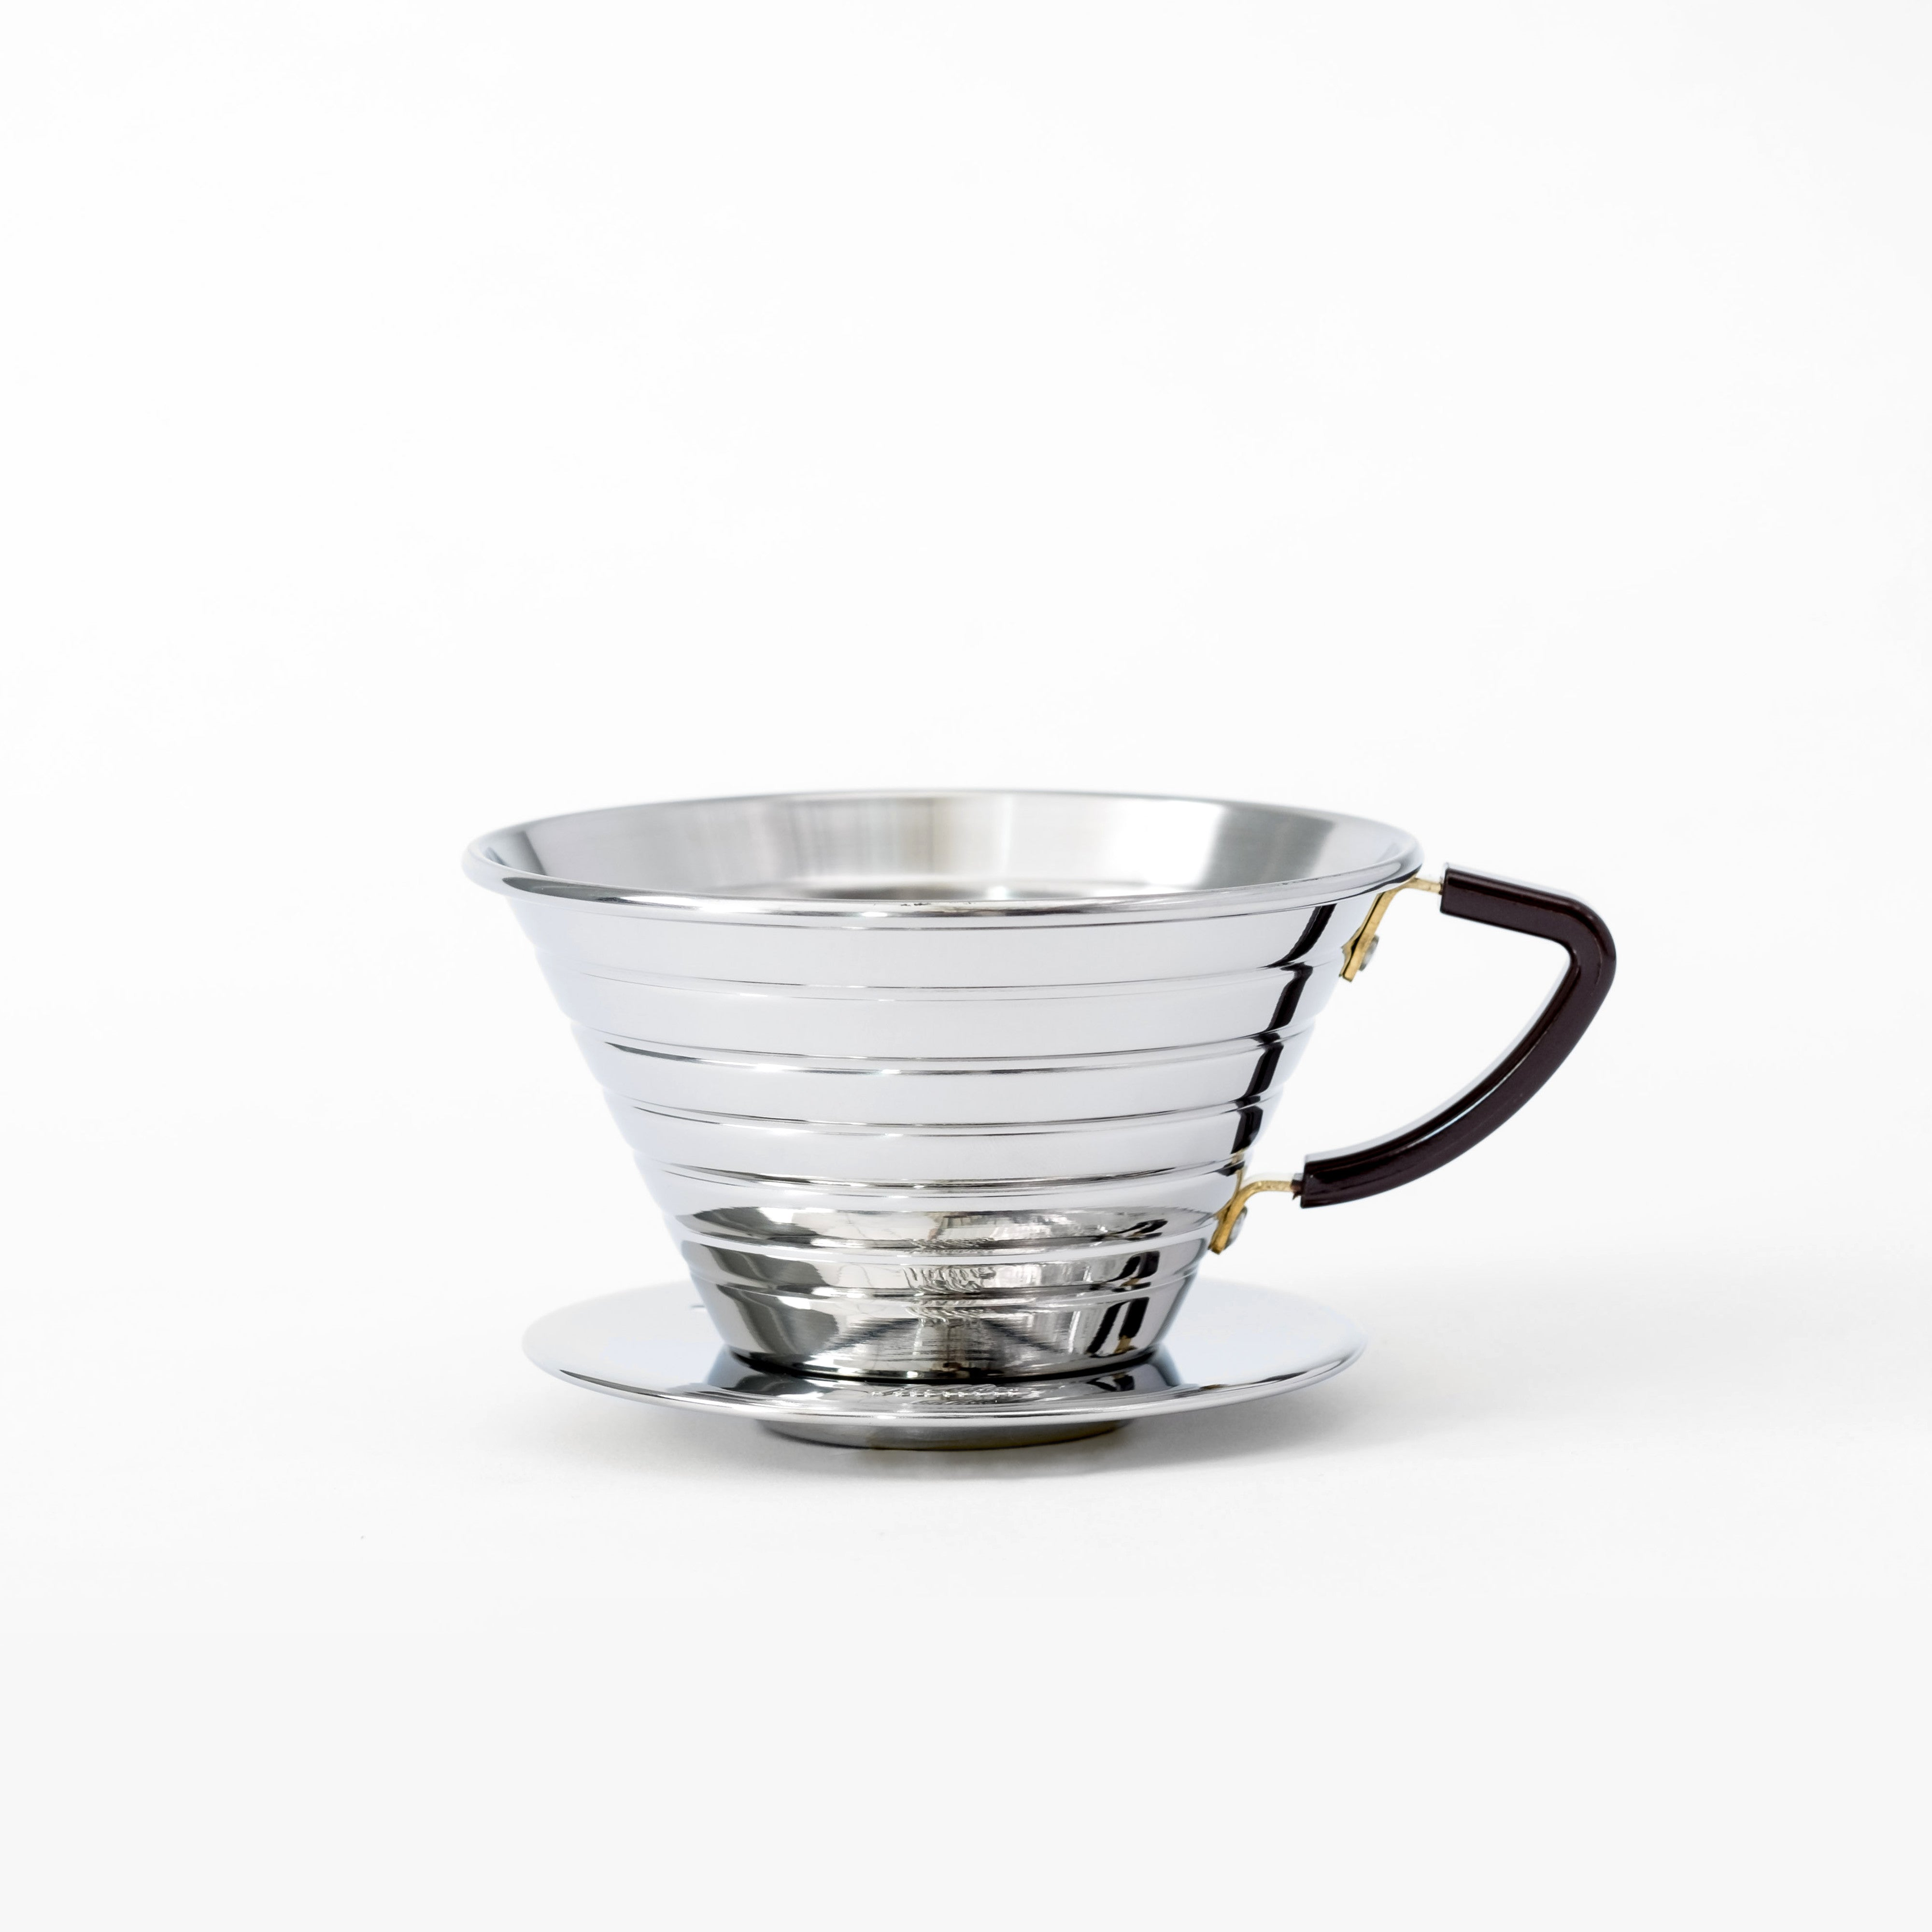 Buddy Brew Coffee Kalita Stainless Steel Brewer